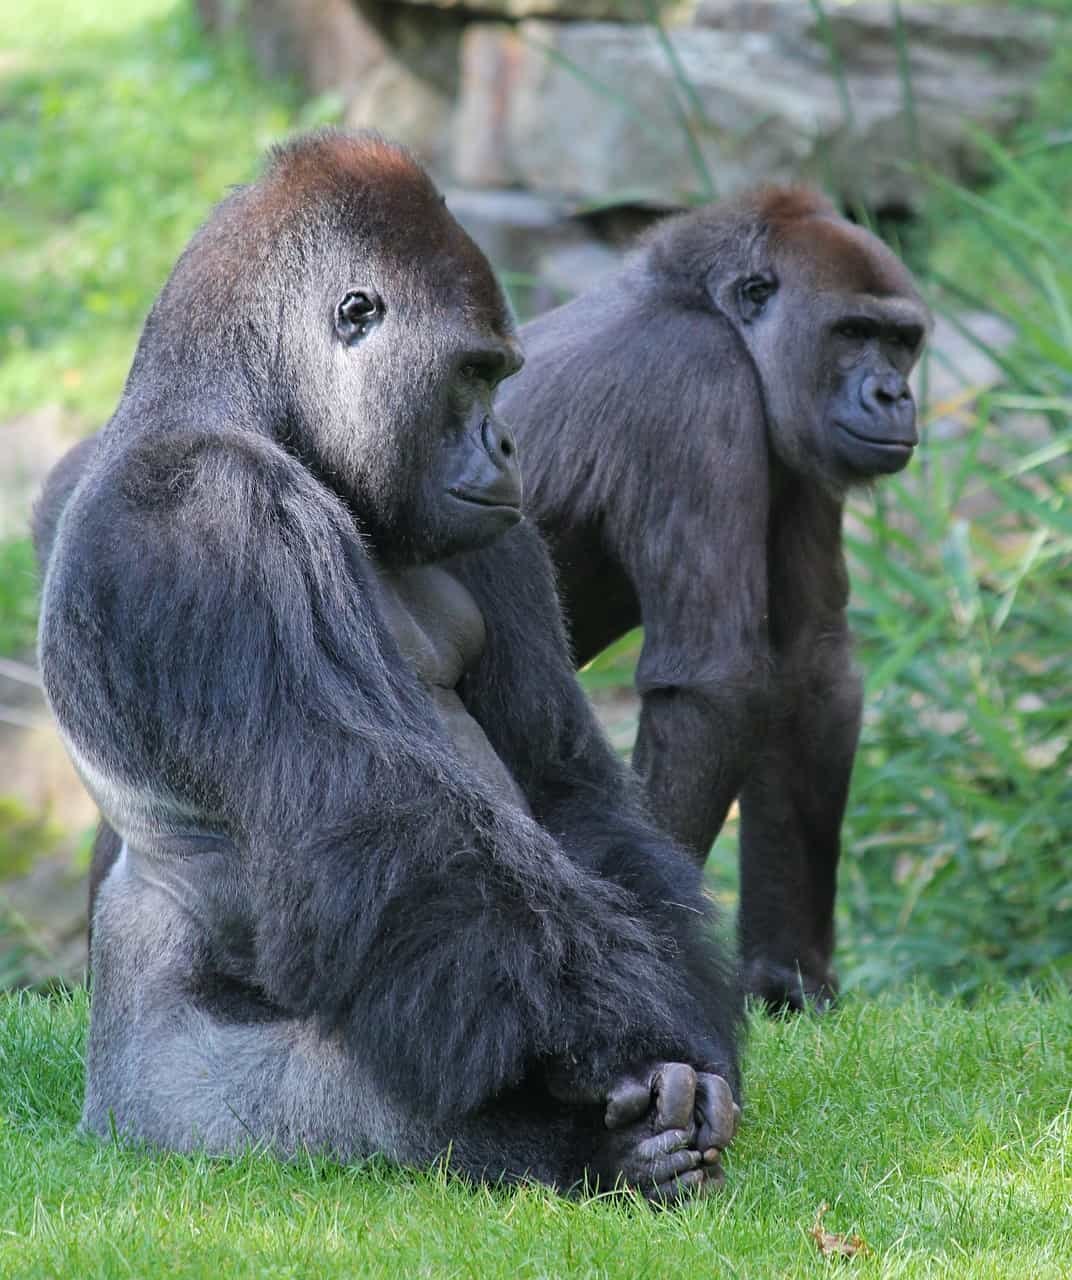 What does a Gorilla look like?